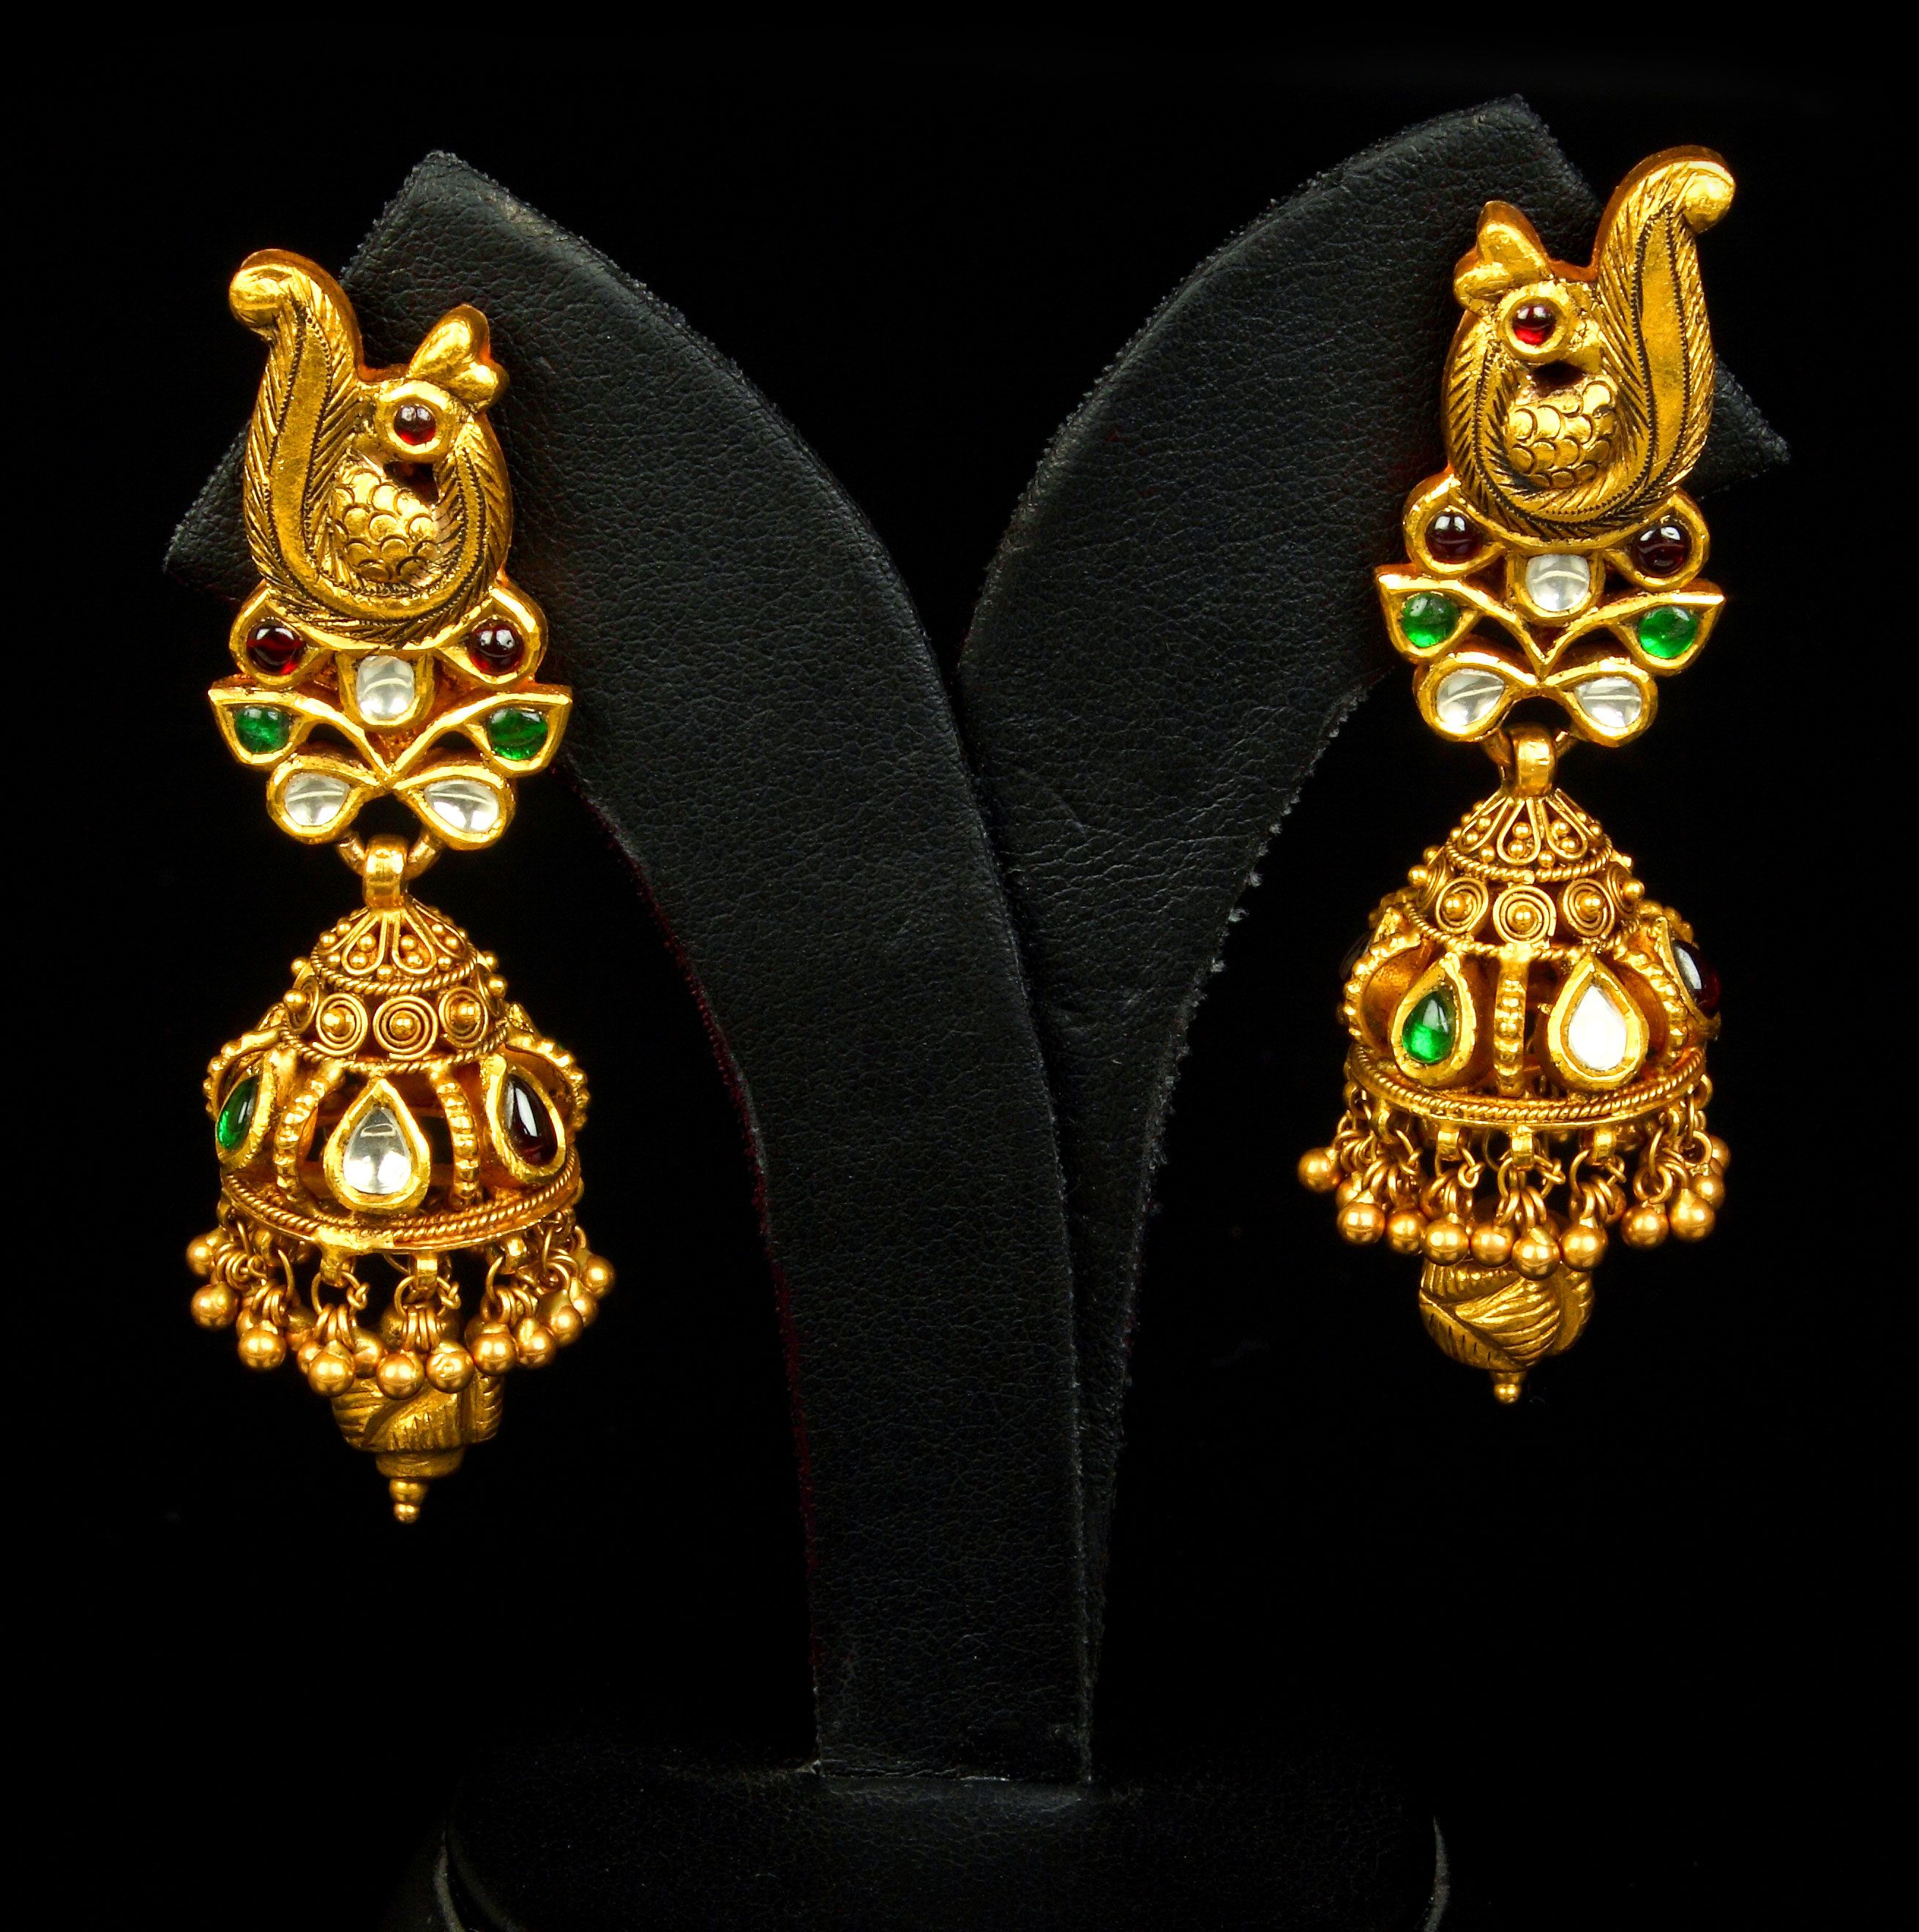 orra diamond gjtci jewellery wins custom home at best kathakali earrings excellence awards made blog